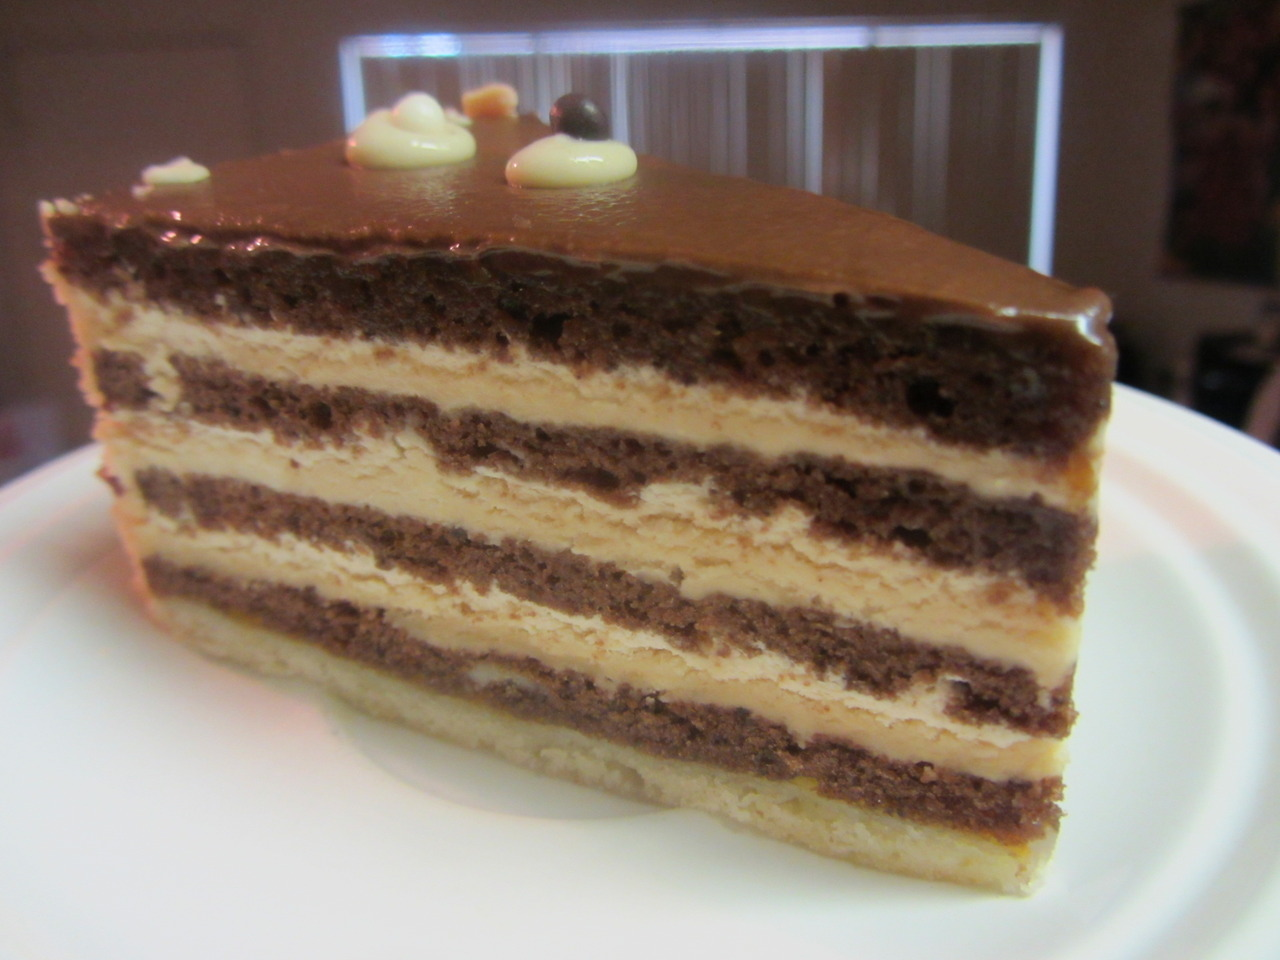 fighting-my-reflection:  Caramel Cream cake from Konditorei, an Austrian pastry cafe I've been meaning to visit before my stay in Davis comes to an end.